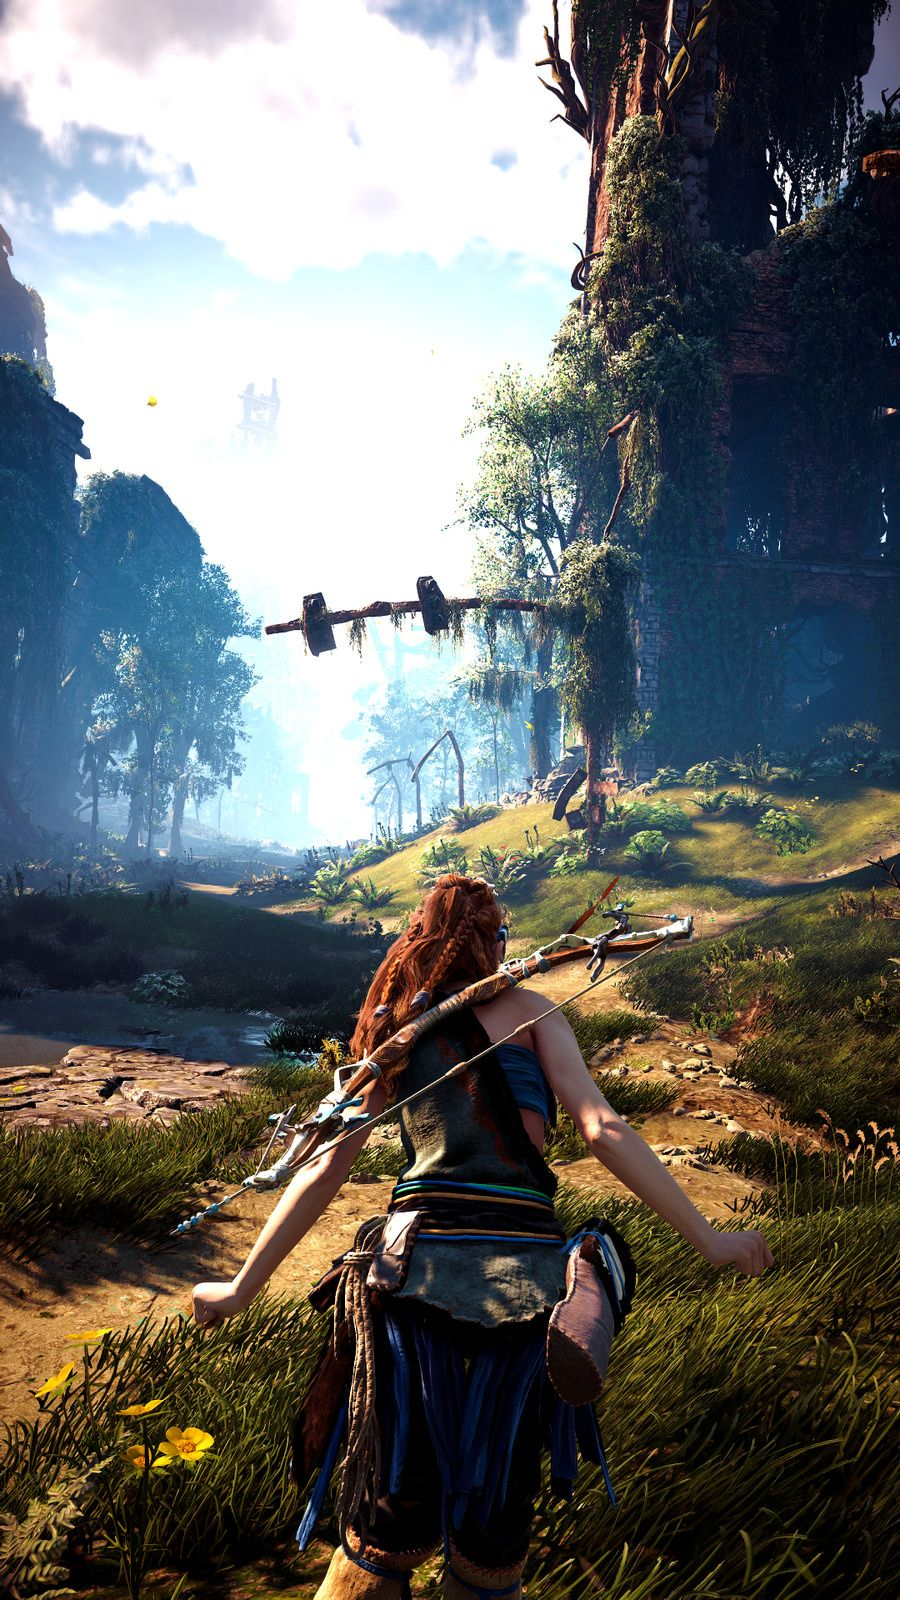 Horizon Zero Dawn Horizon Zero Dawn Wallpaper Horizon Zero Dawn Horizon Zero Dawn Aloy